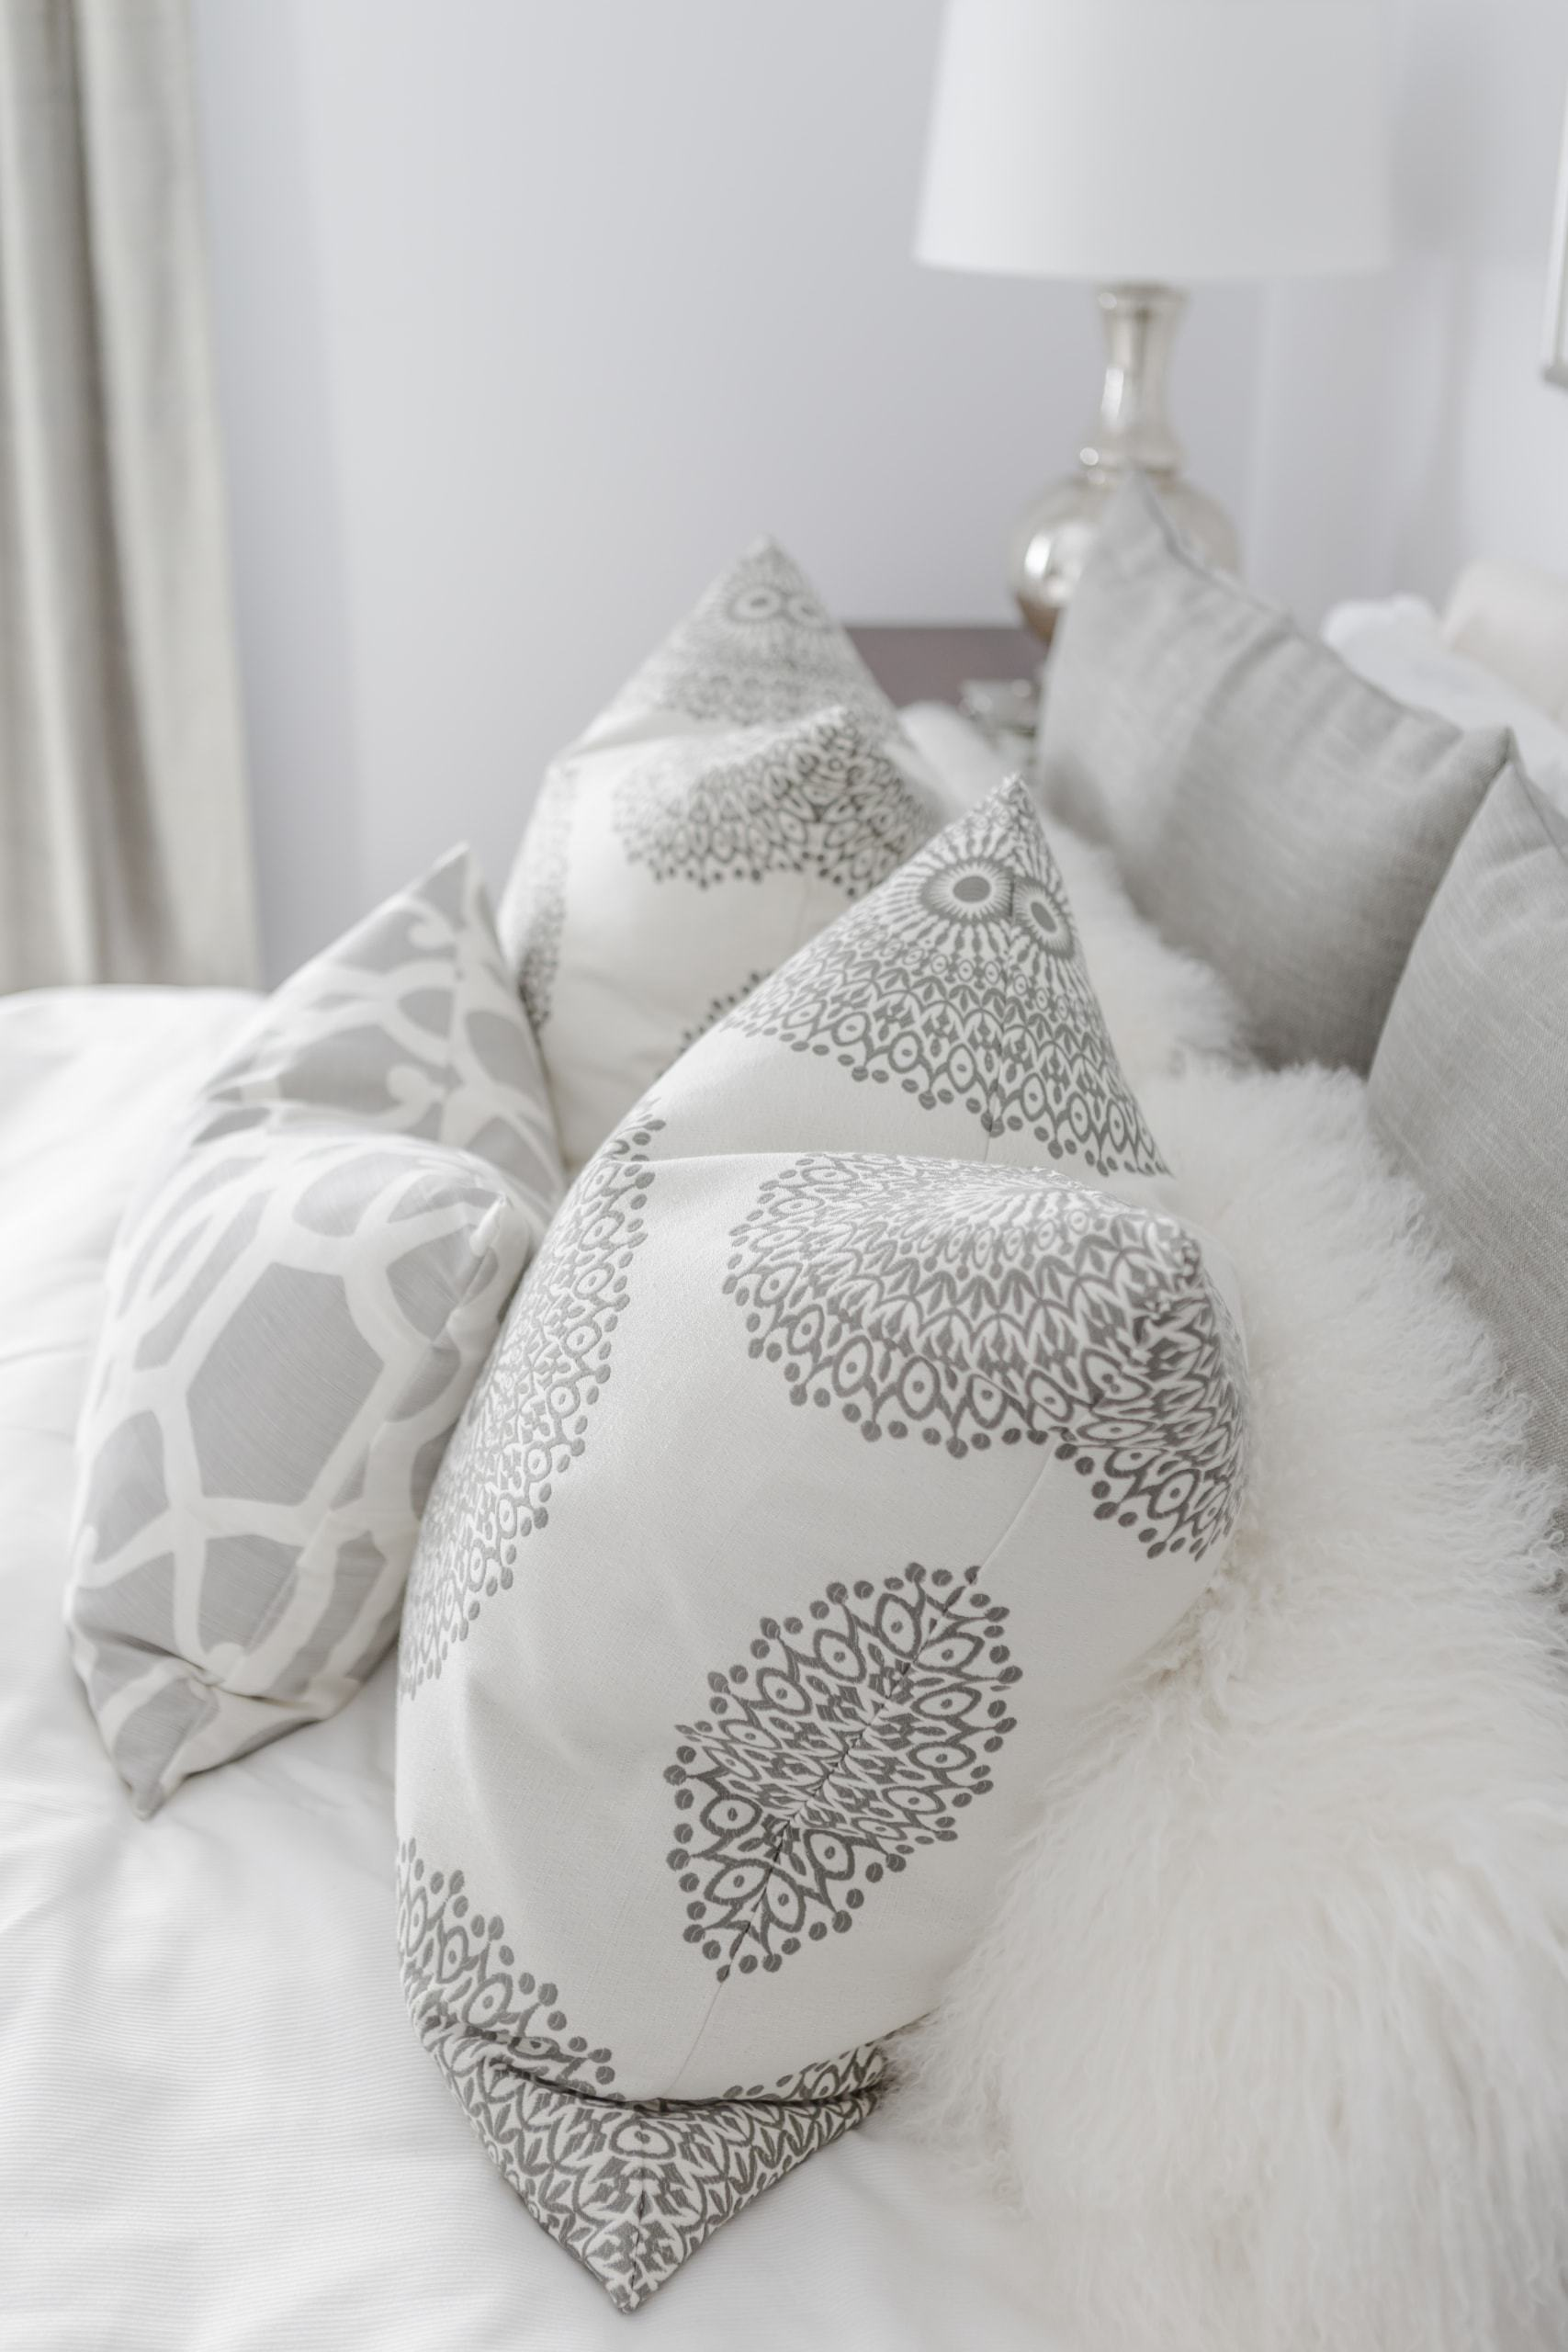 Gray and white pillows on a bed